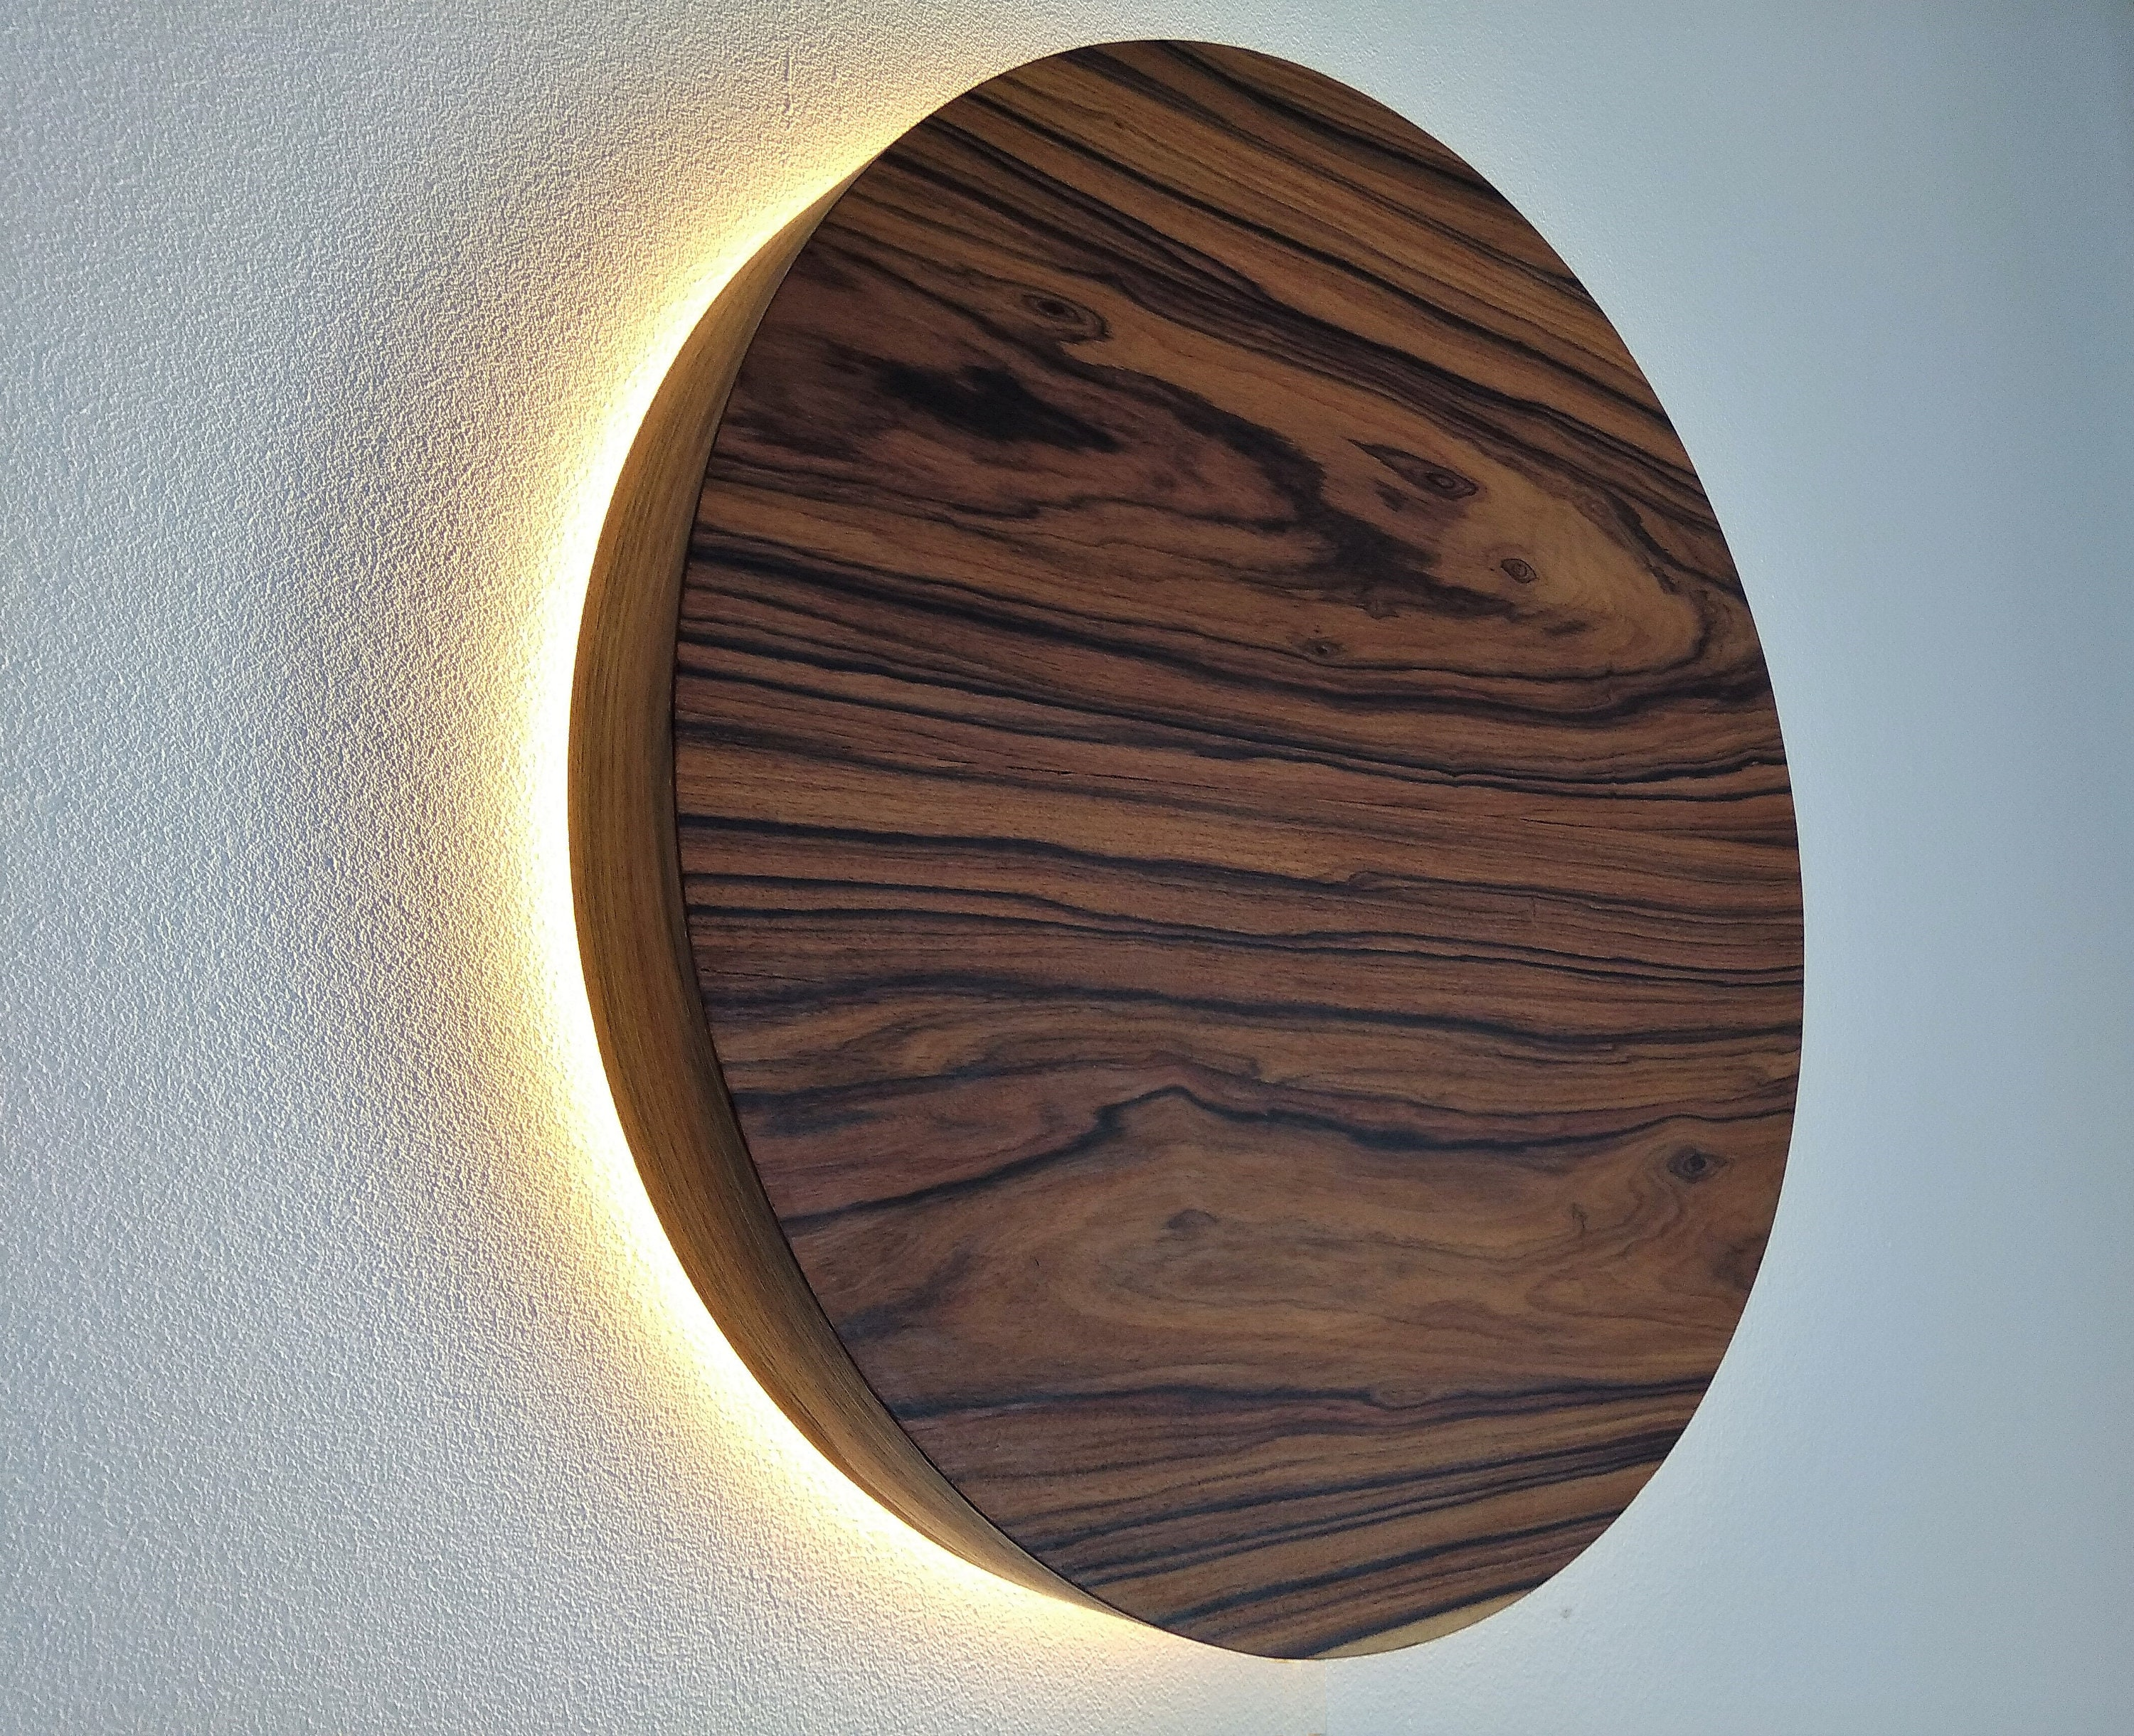 Led Wood Sconce Wooden Wall Lamp Light Natural Hard Wiring Sconces New Nordic Design Jacaranda